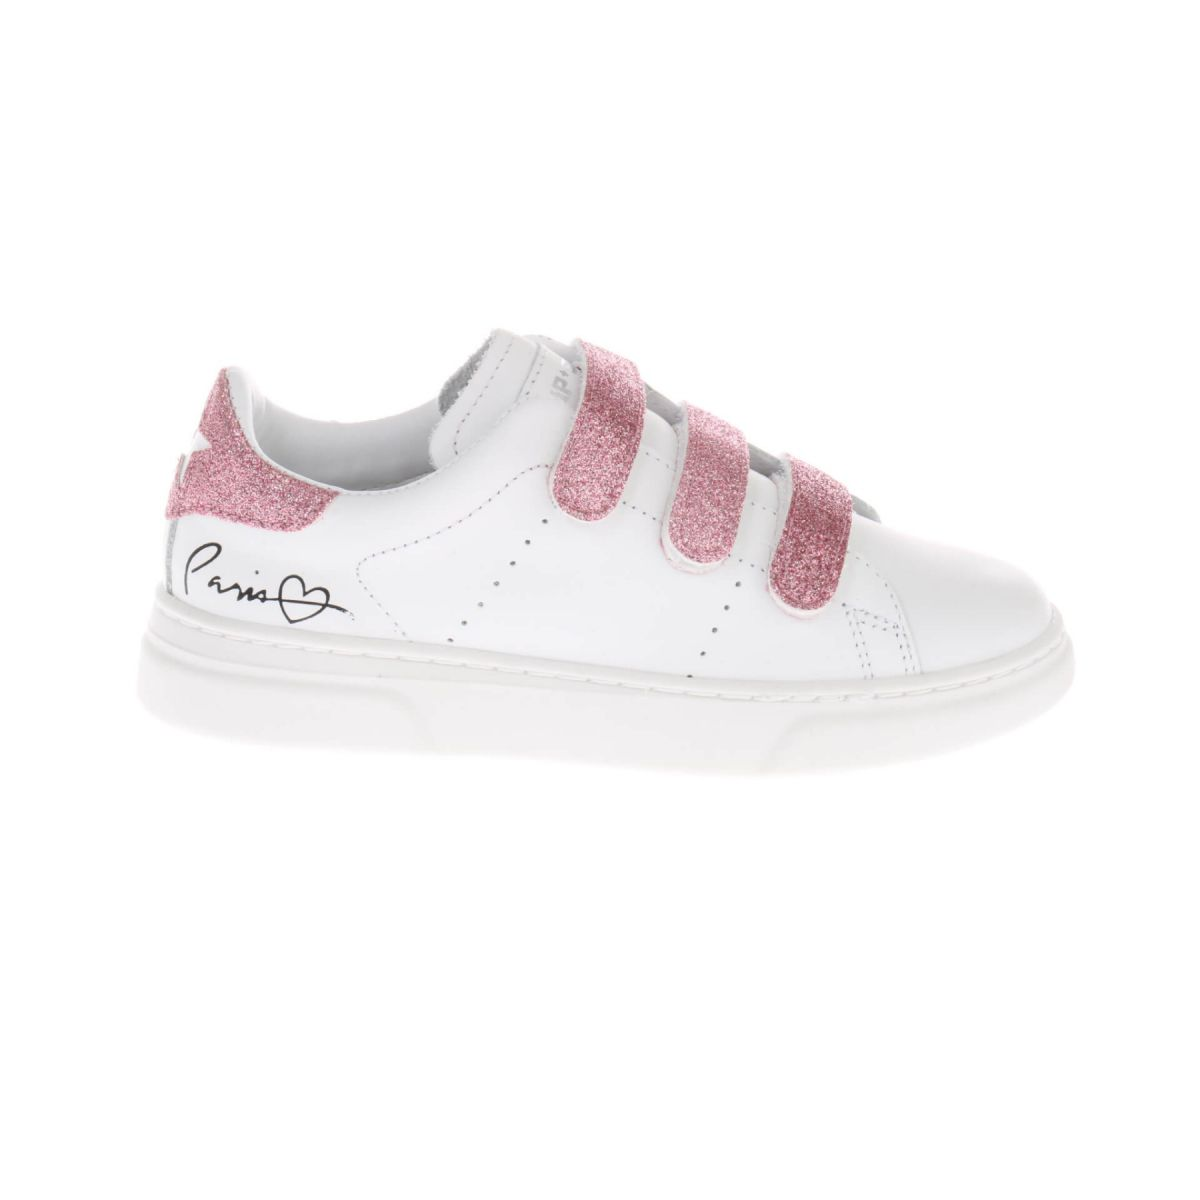 HIP H1338 Sneakers Wit Roze Glitter